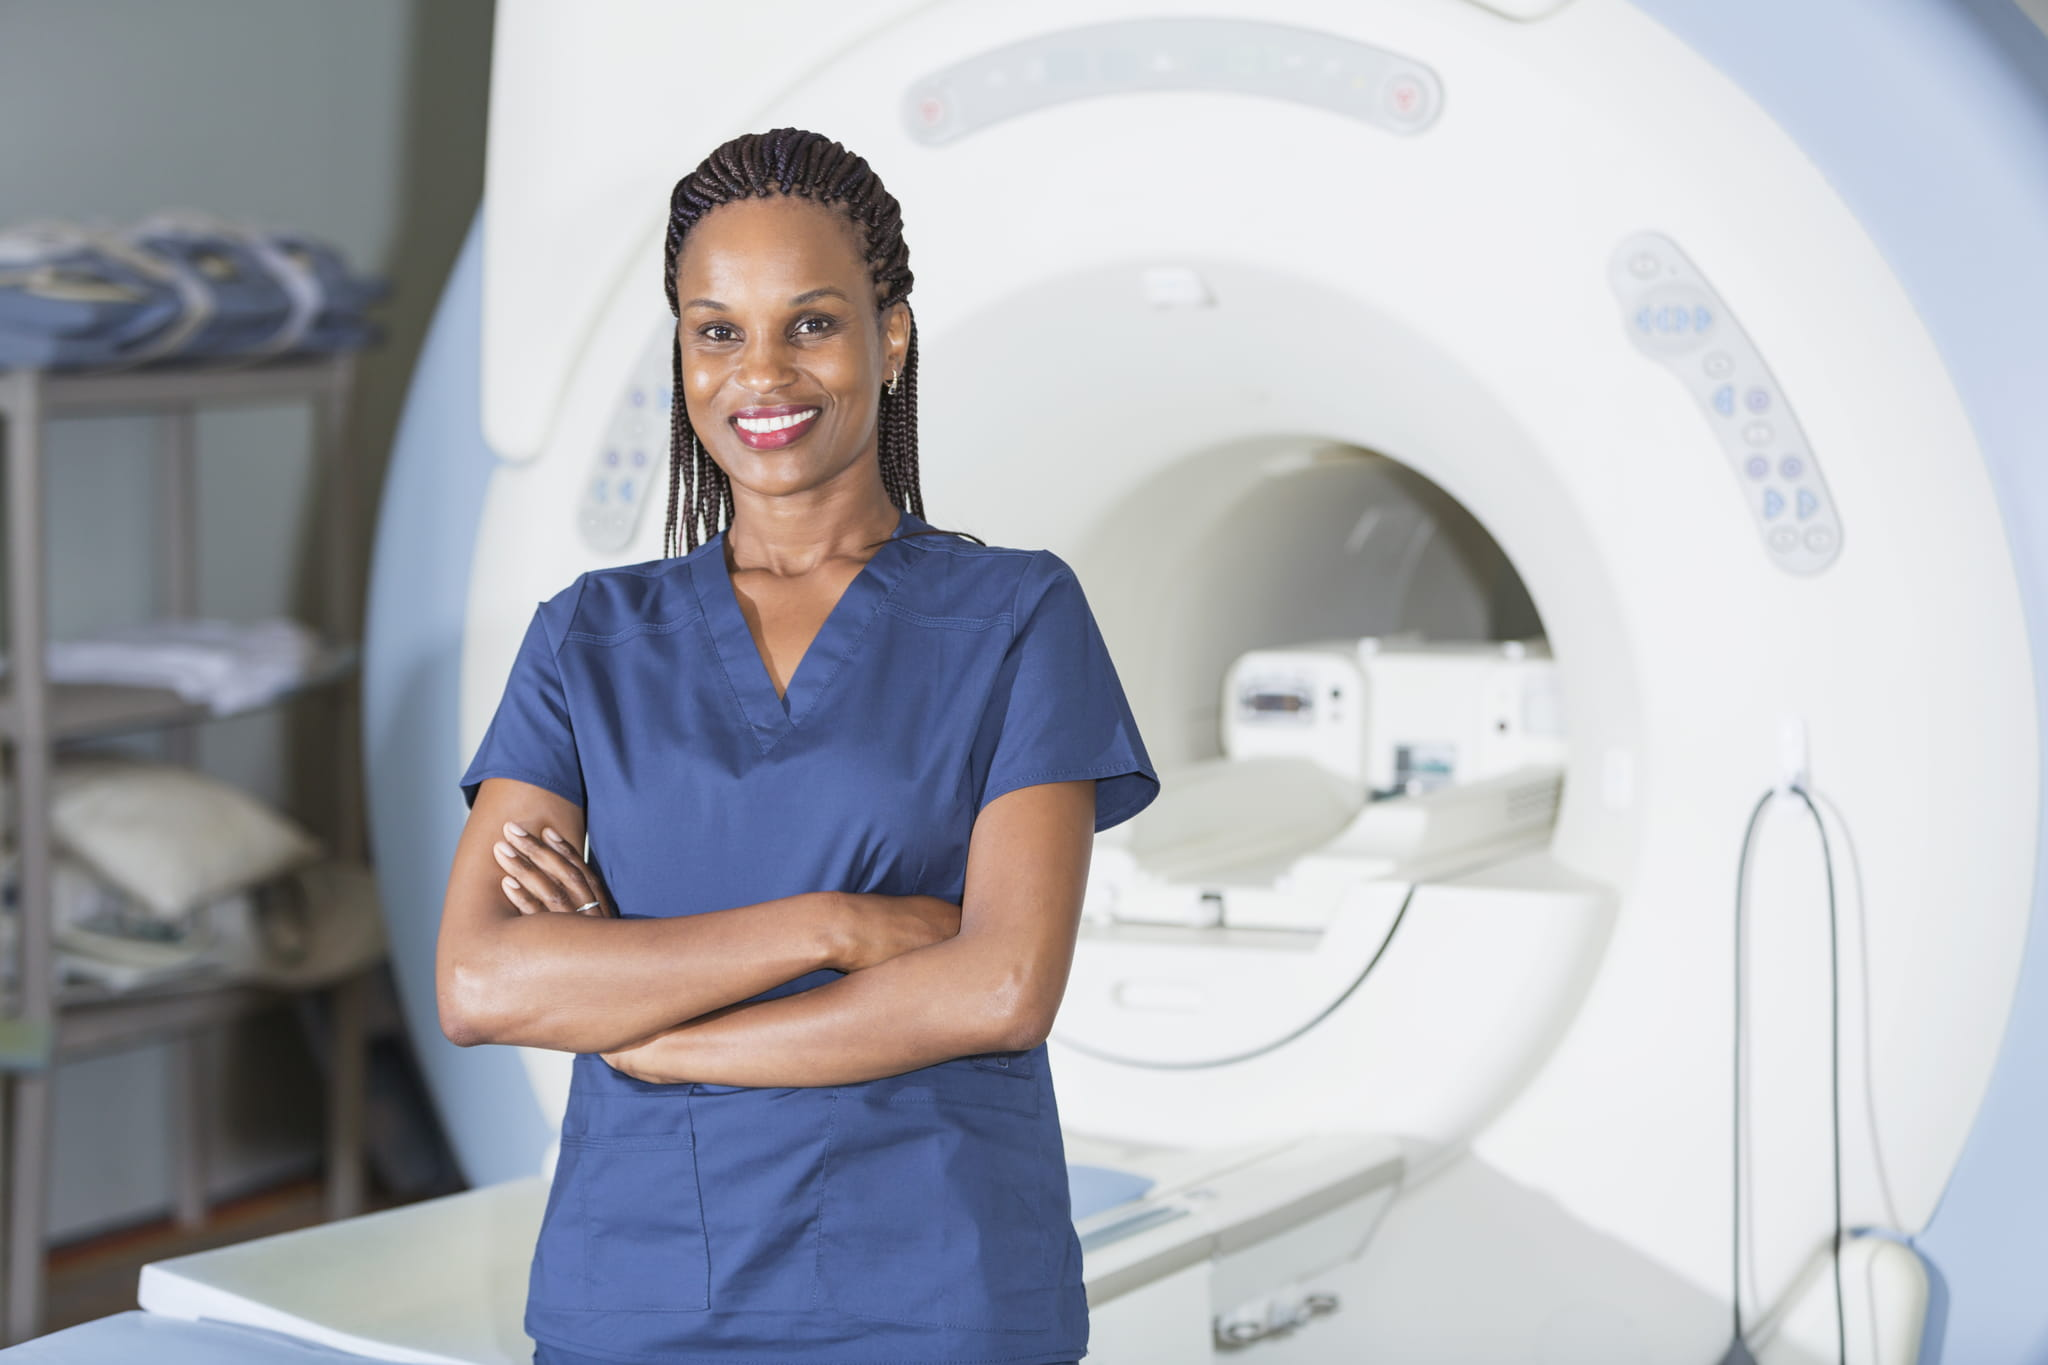 woman in scrubs with MRI machine